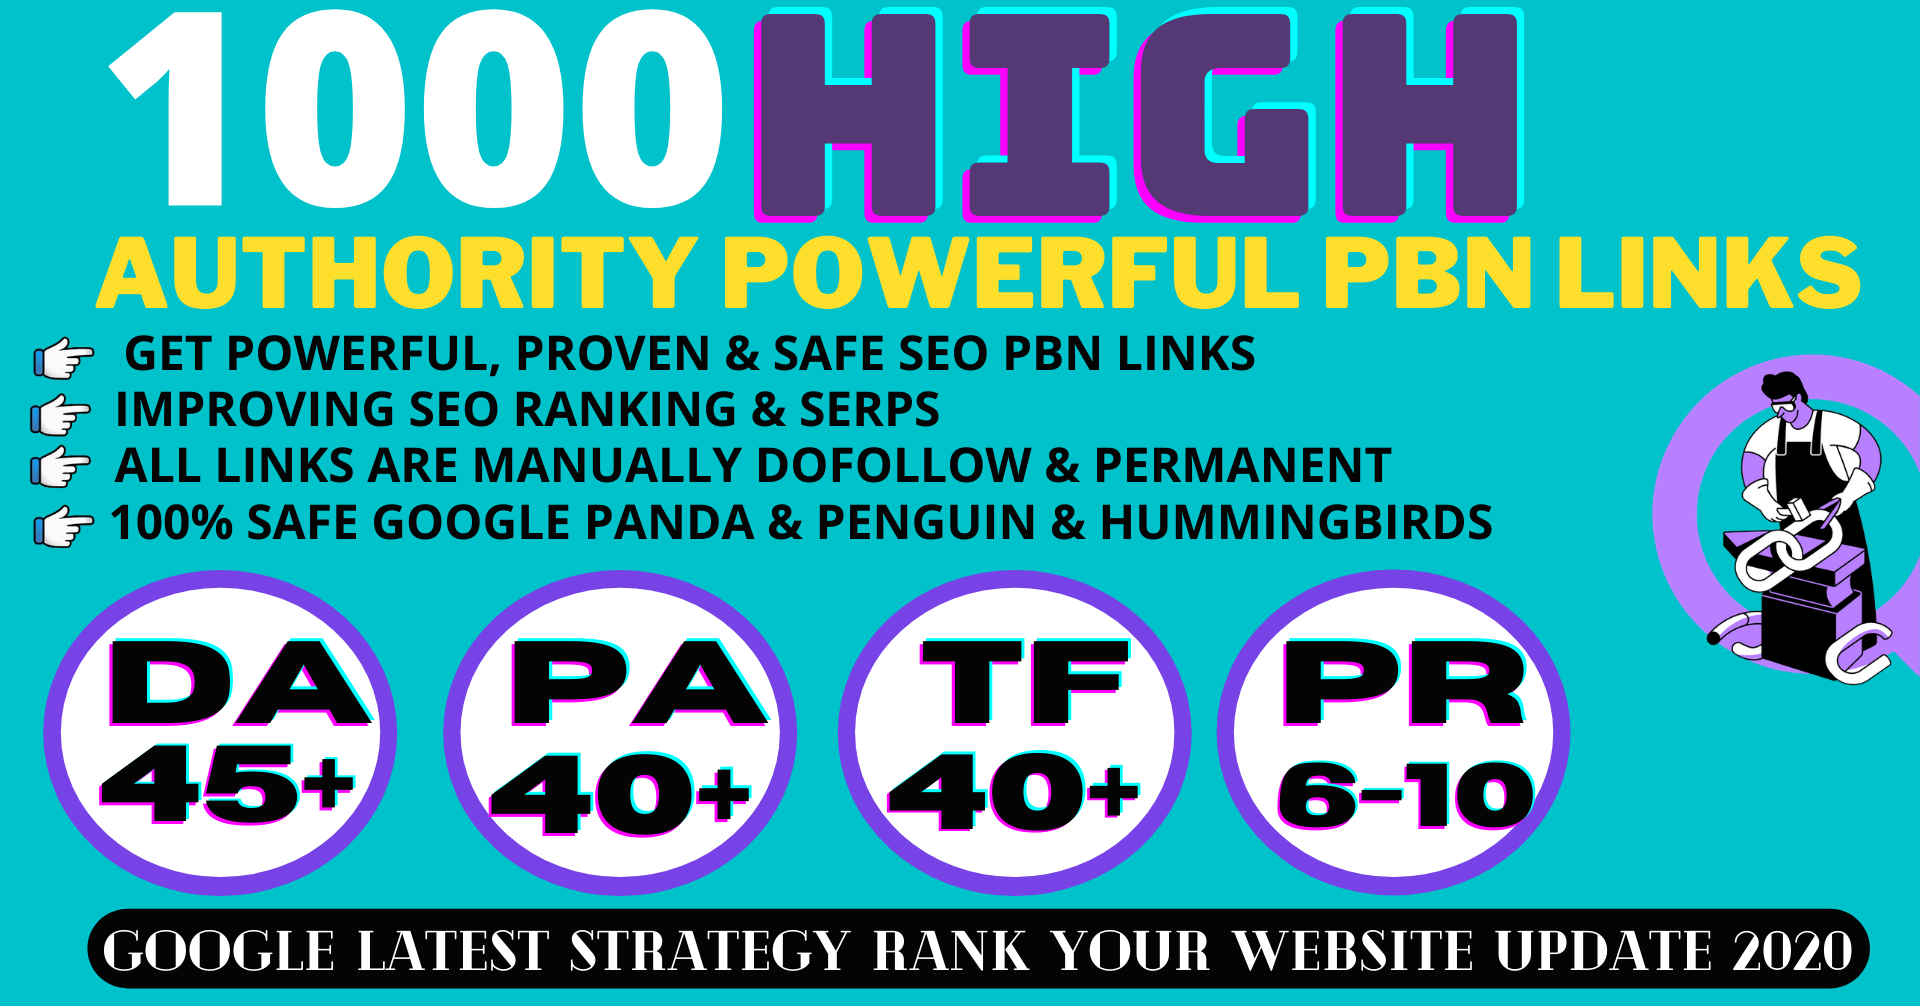 1000+ Permanent PBN Backlinks Web2.0 With High DA45+PA40+PR6+ DR 50+ Links Homepage Unique website